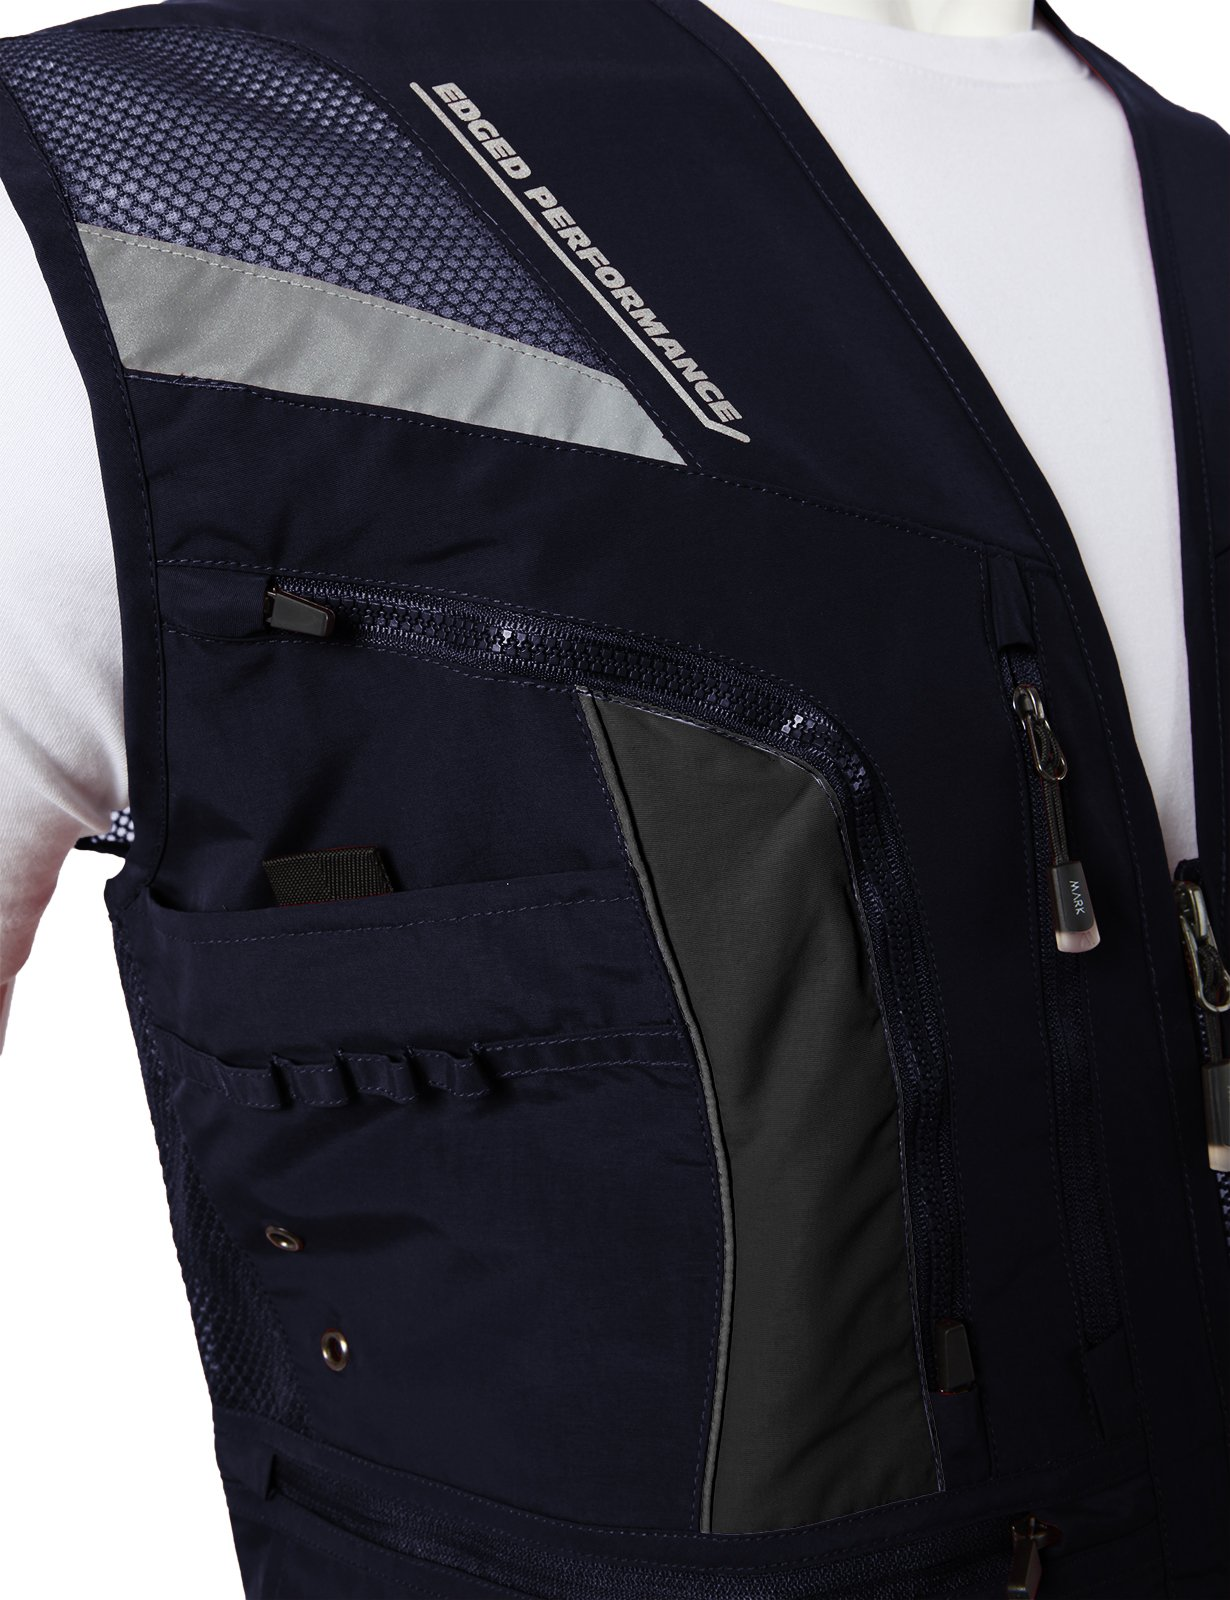 H2H Mens Casual Work Utility Hunting Fishing Vest Travels Sports Mesh Jacket with Multi-Pockets Navy US L/Asia XL (KMOV0144) by H2H (Image #6)